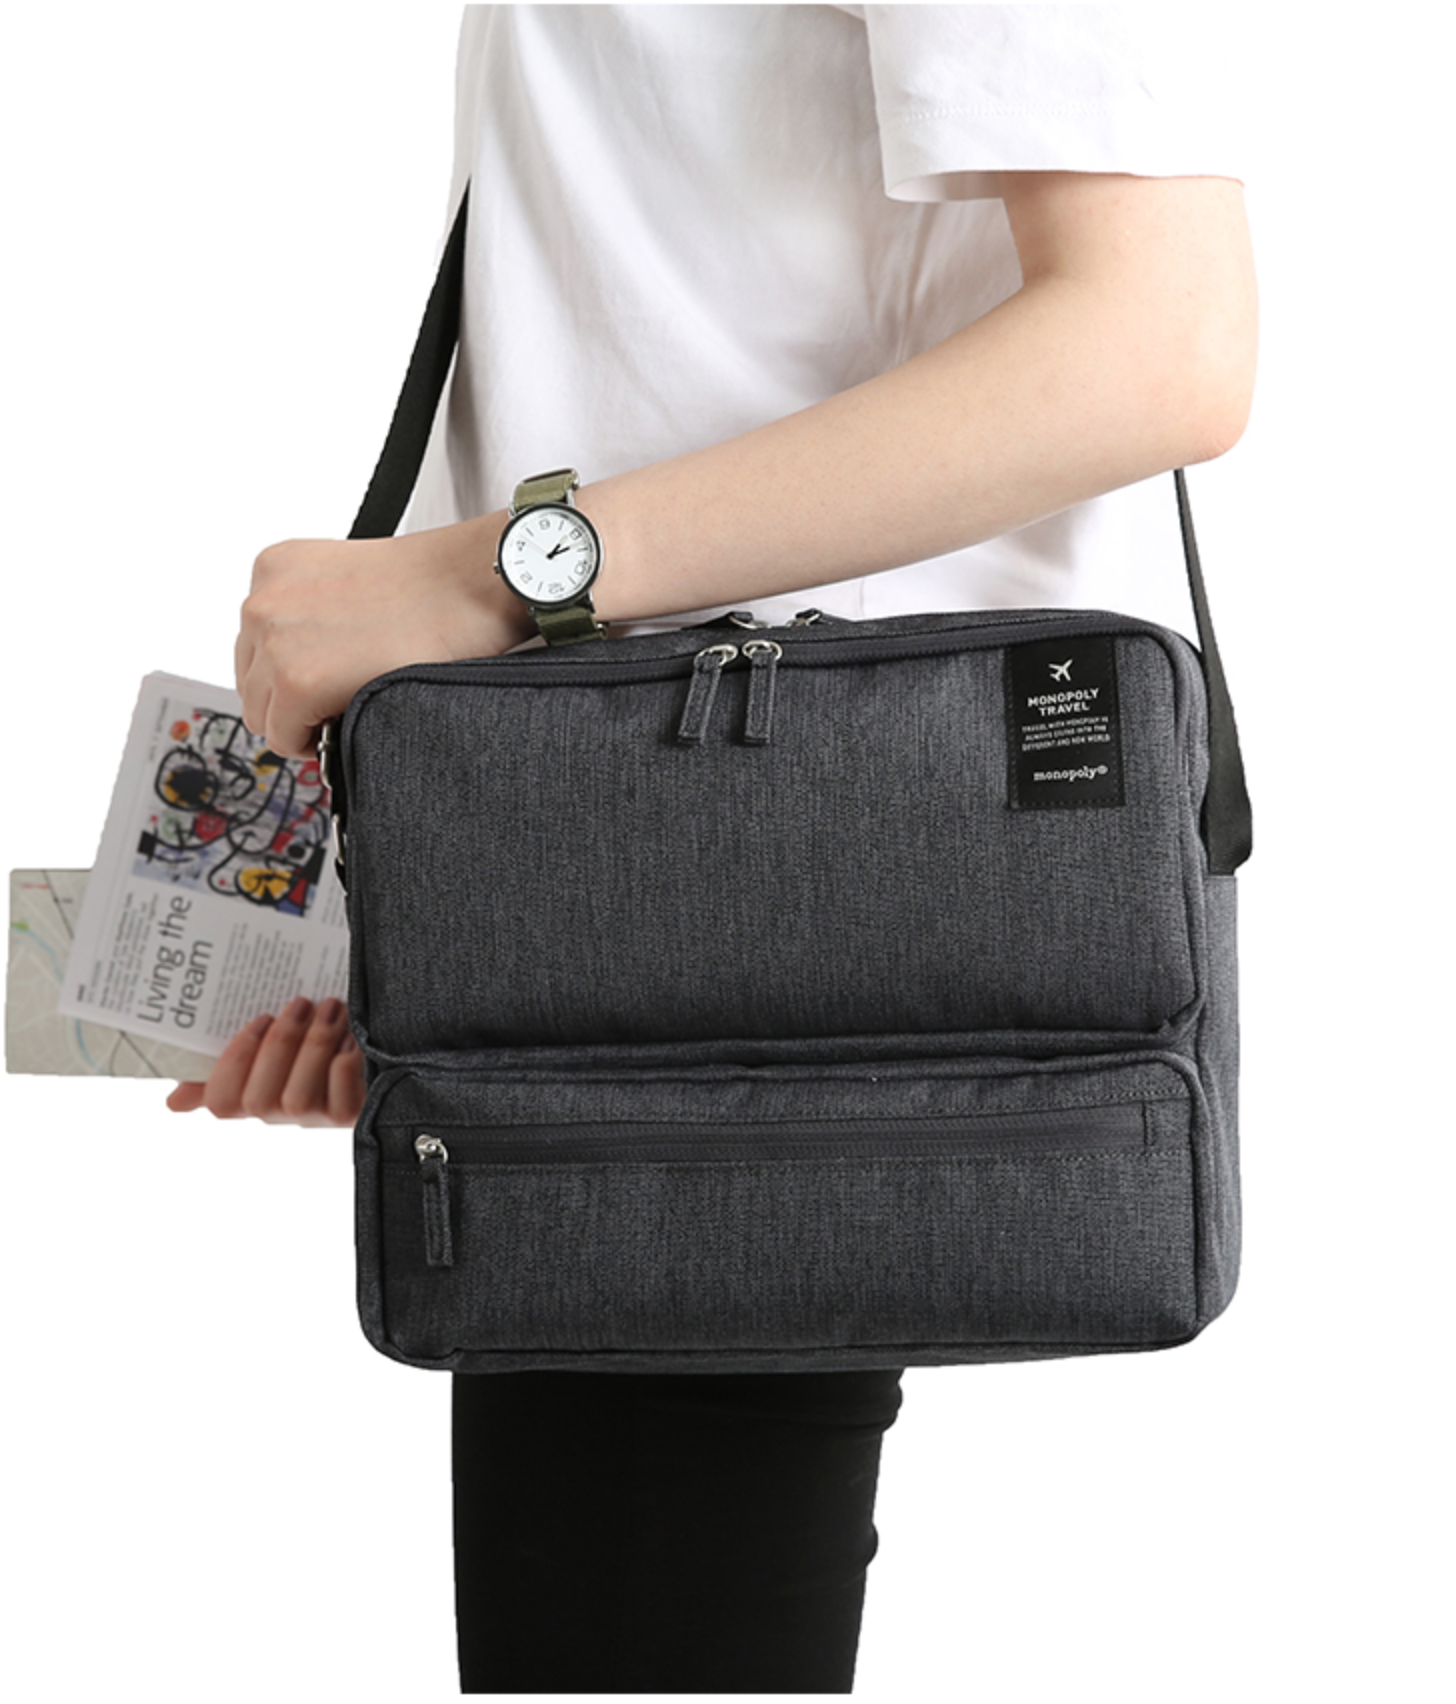 Monopoly Travel Messenger Bag | Monopoly and Messenger bags